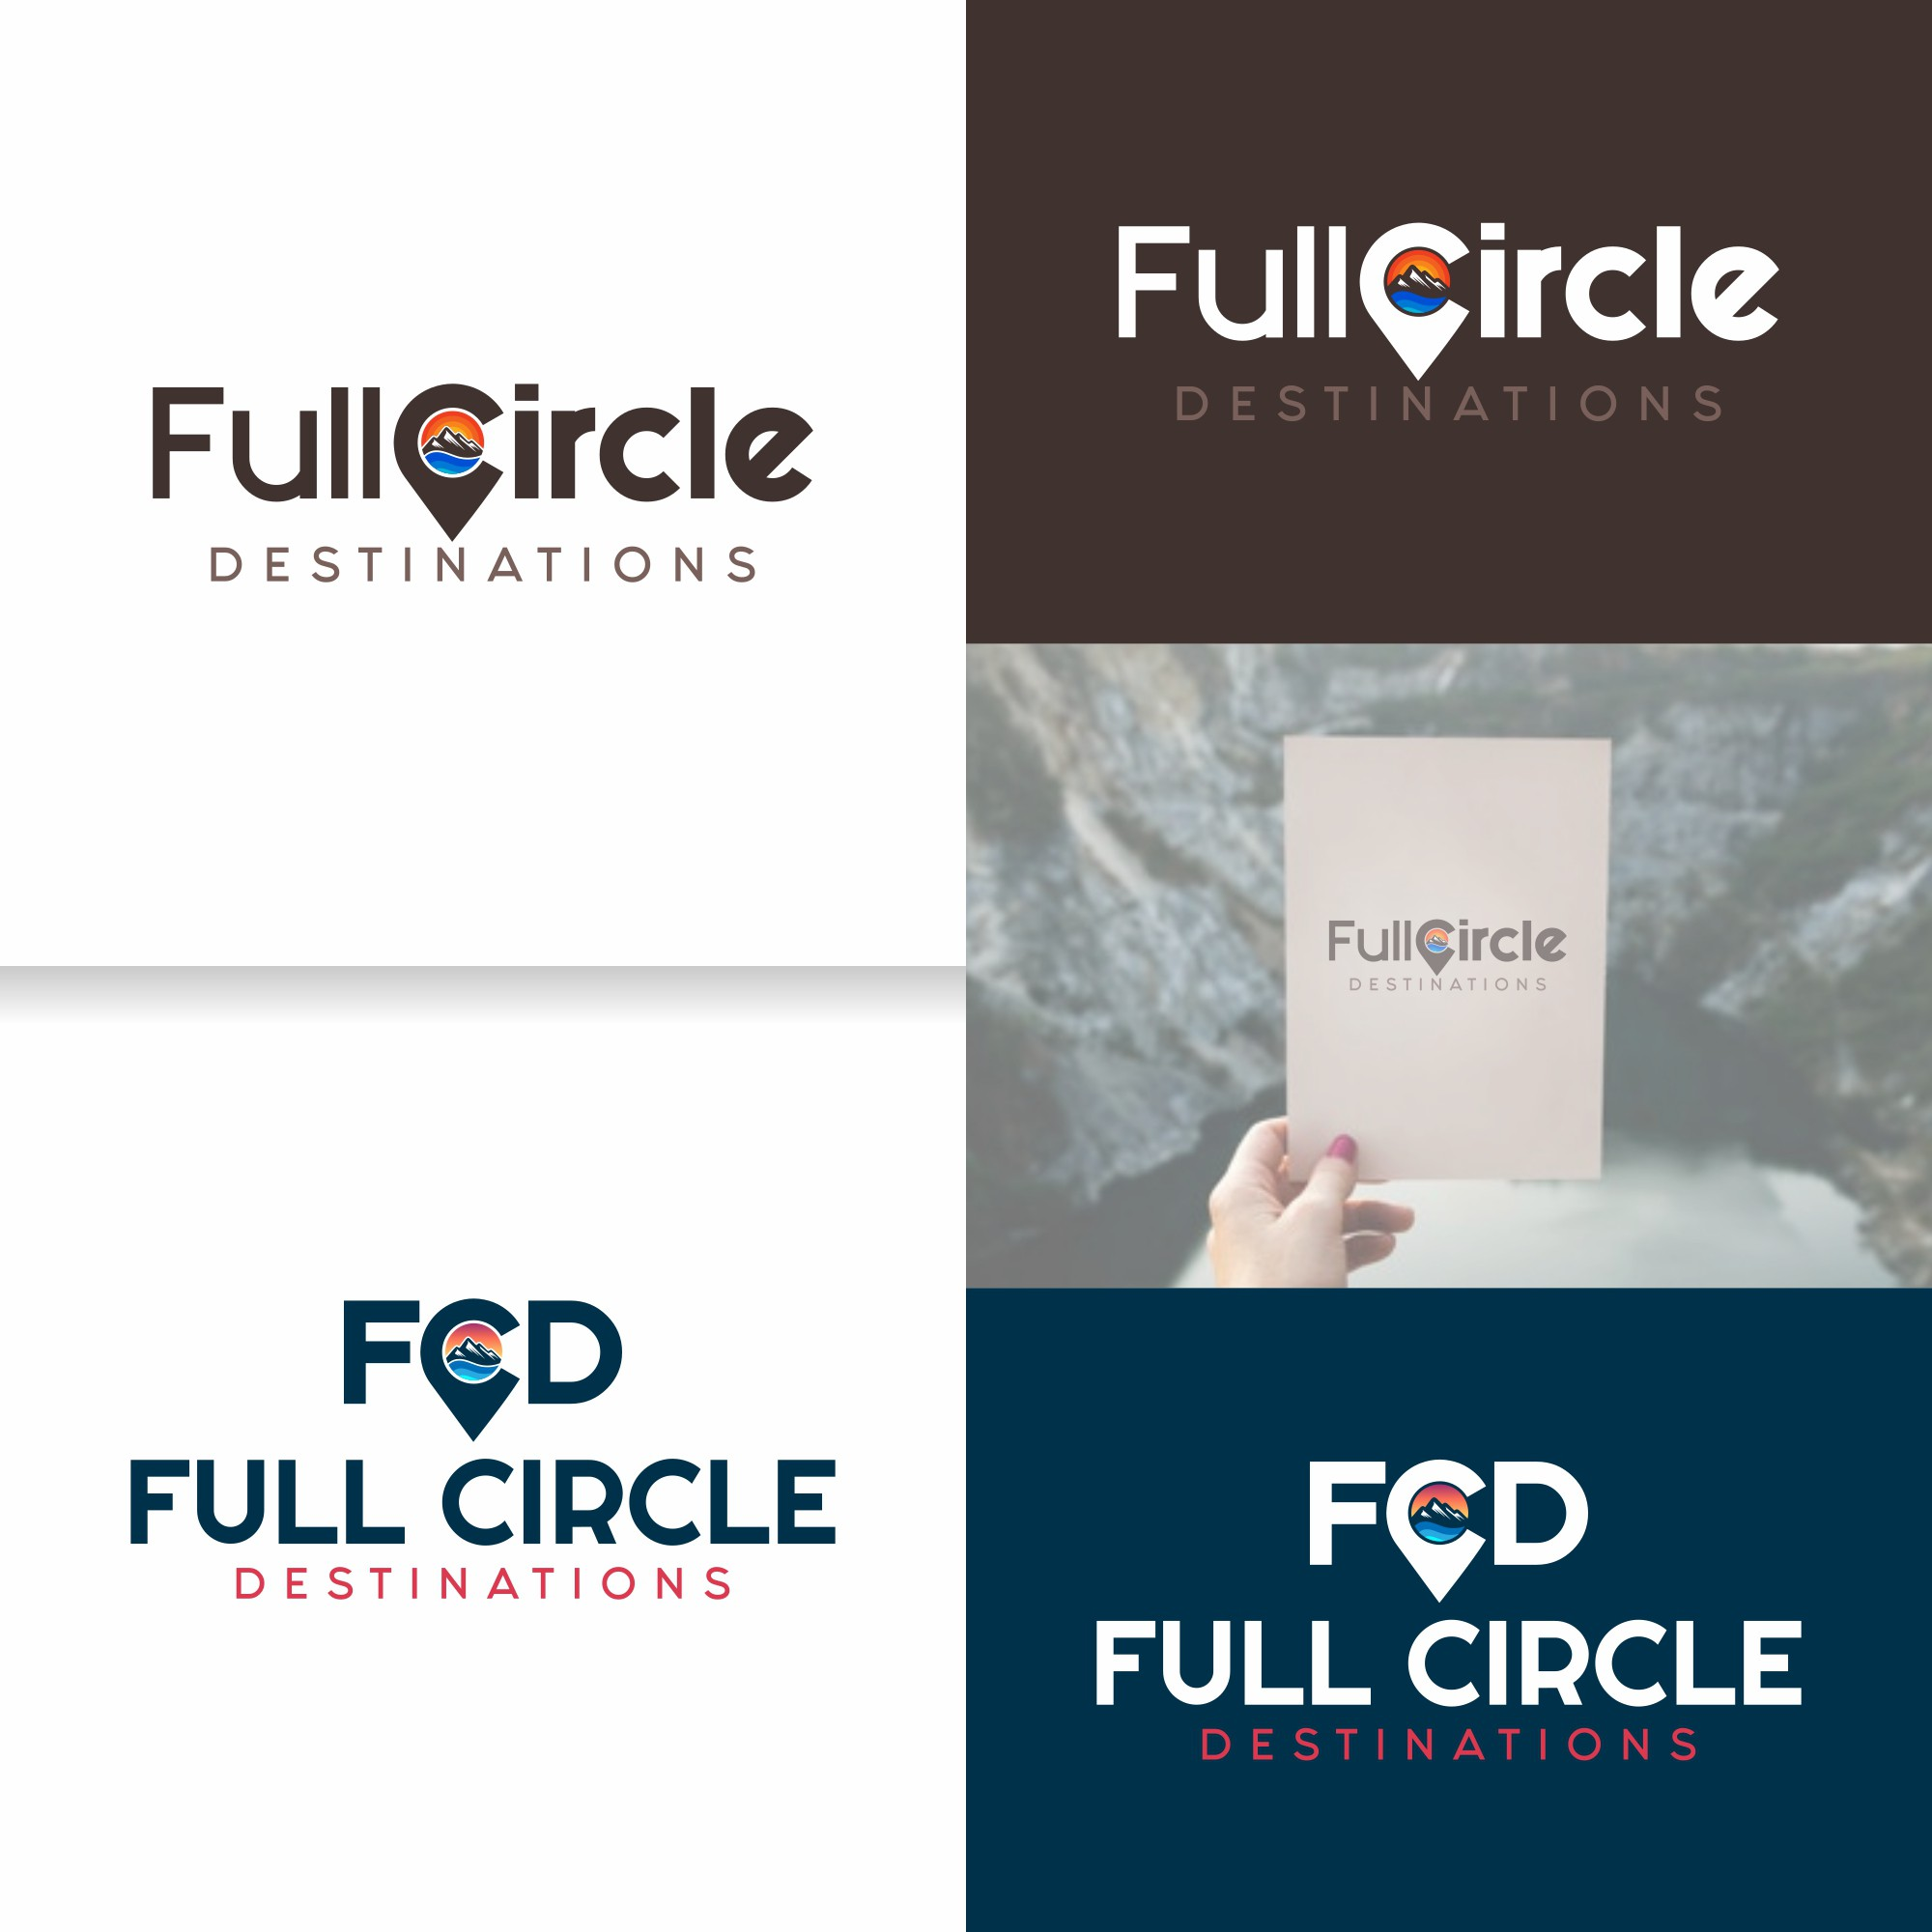 Full Circle Destinations - The next big hospitality company Needs a logo and Brand Package